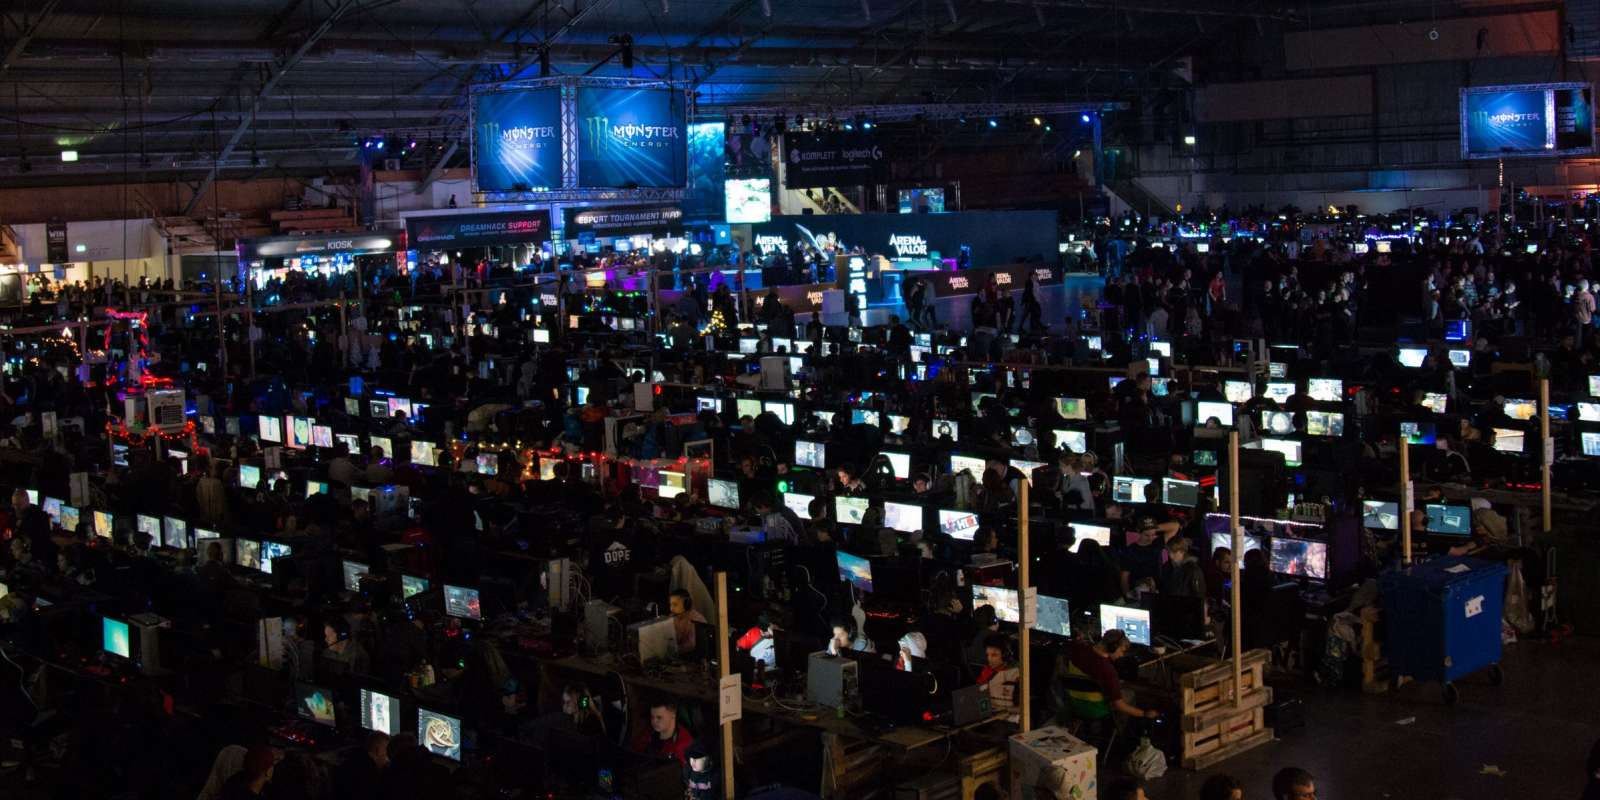 General gaming shots of DreamHack Winter in Jonkoping Sweden